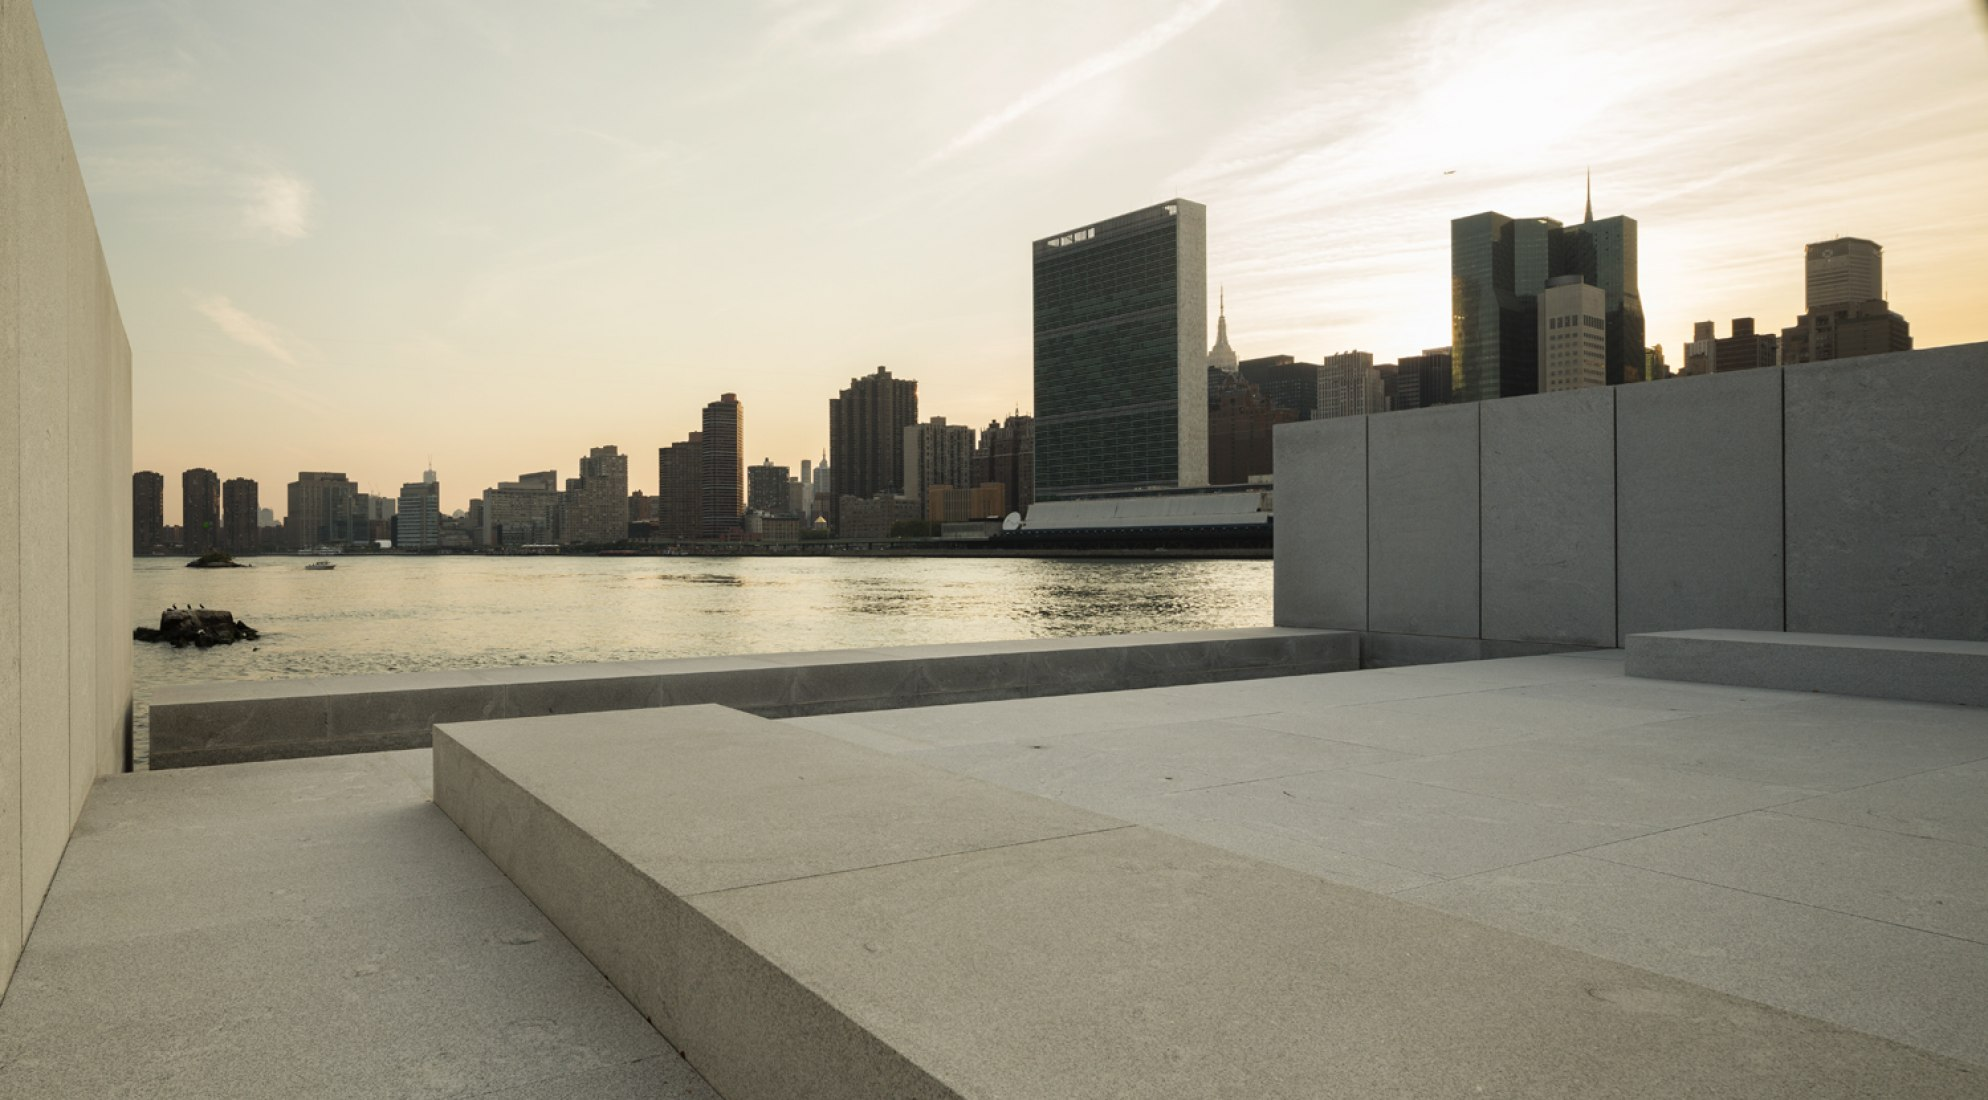 Franklin D. Roosevelt Four Freedoms Park. Design by Louis Kahn. Photography © Paul Warchol.